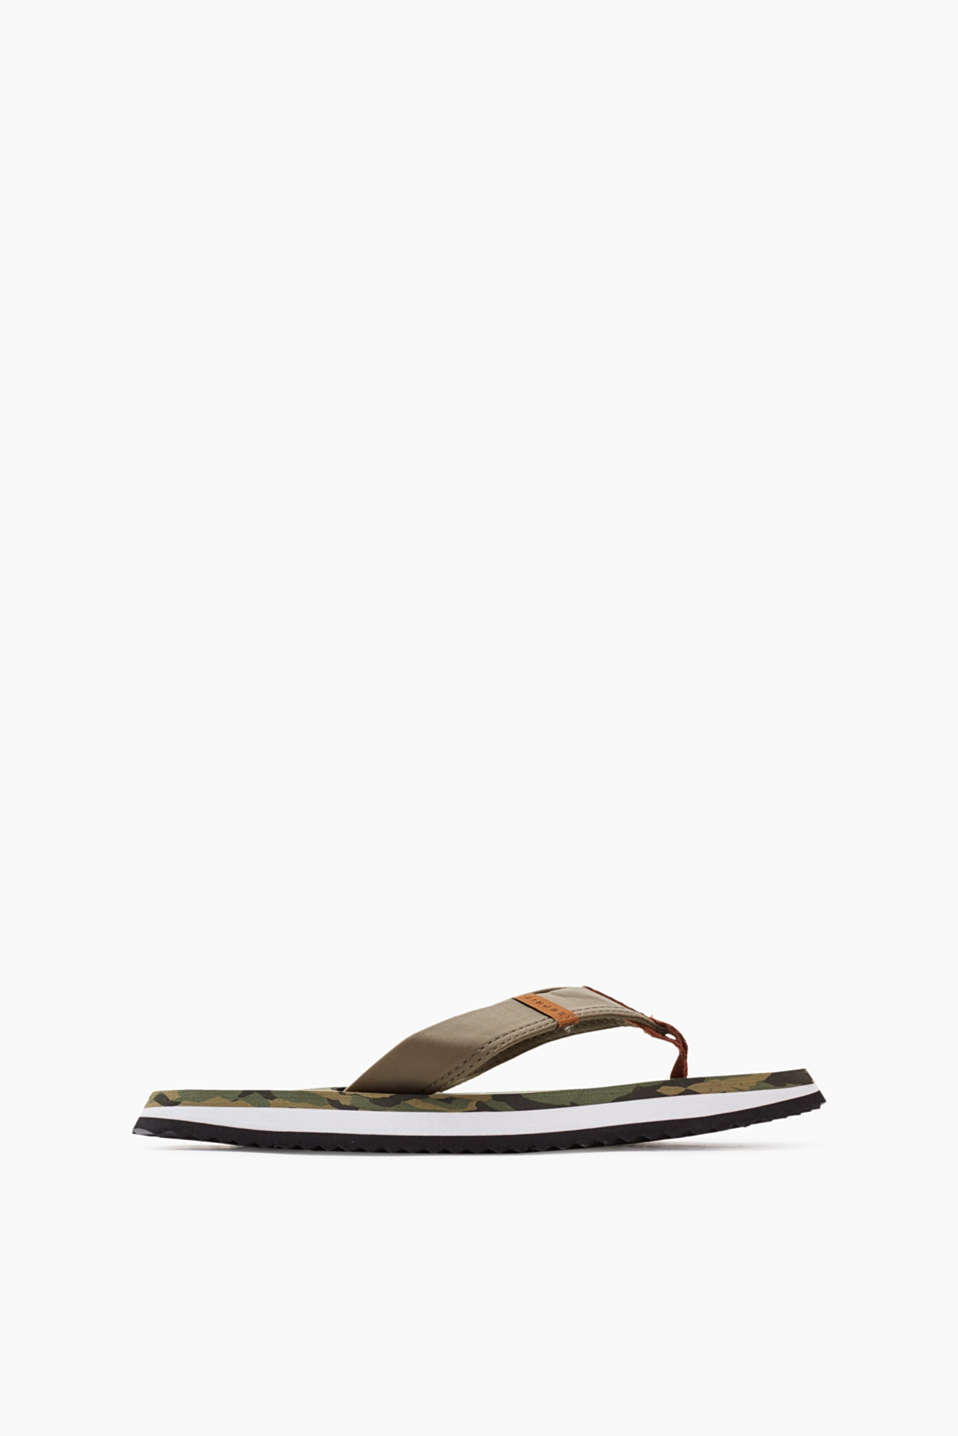 Esprit - Toe-post sandals with camouflage pattern